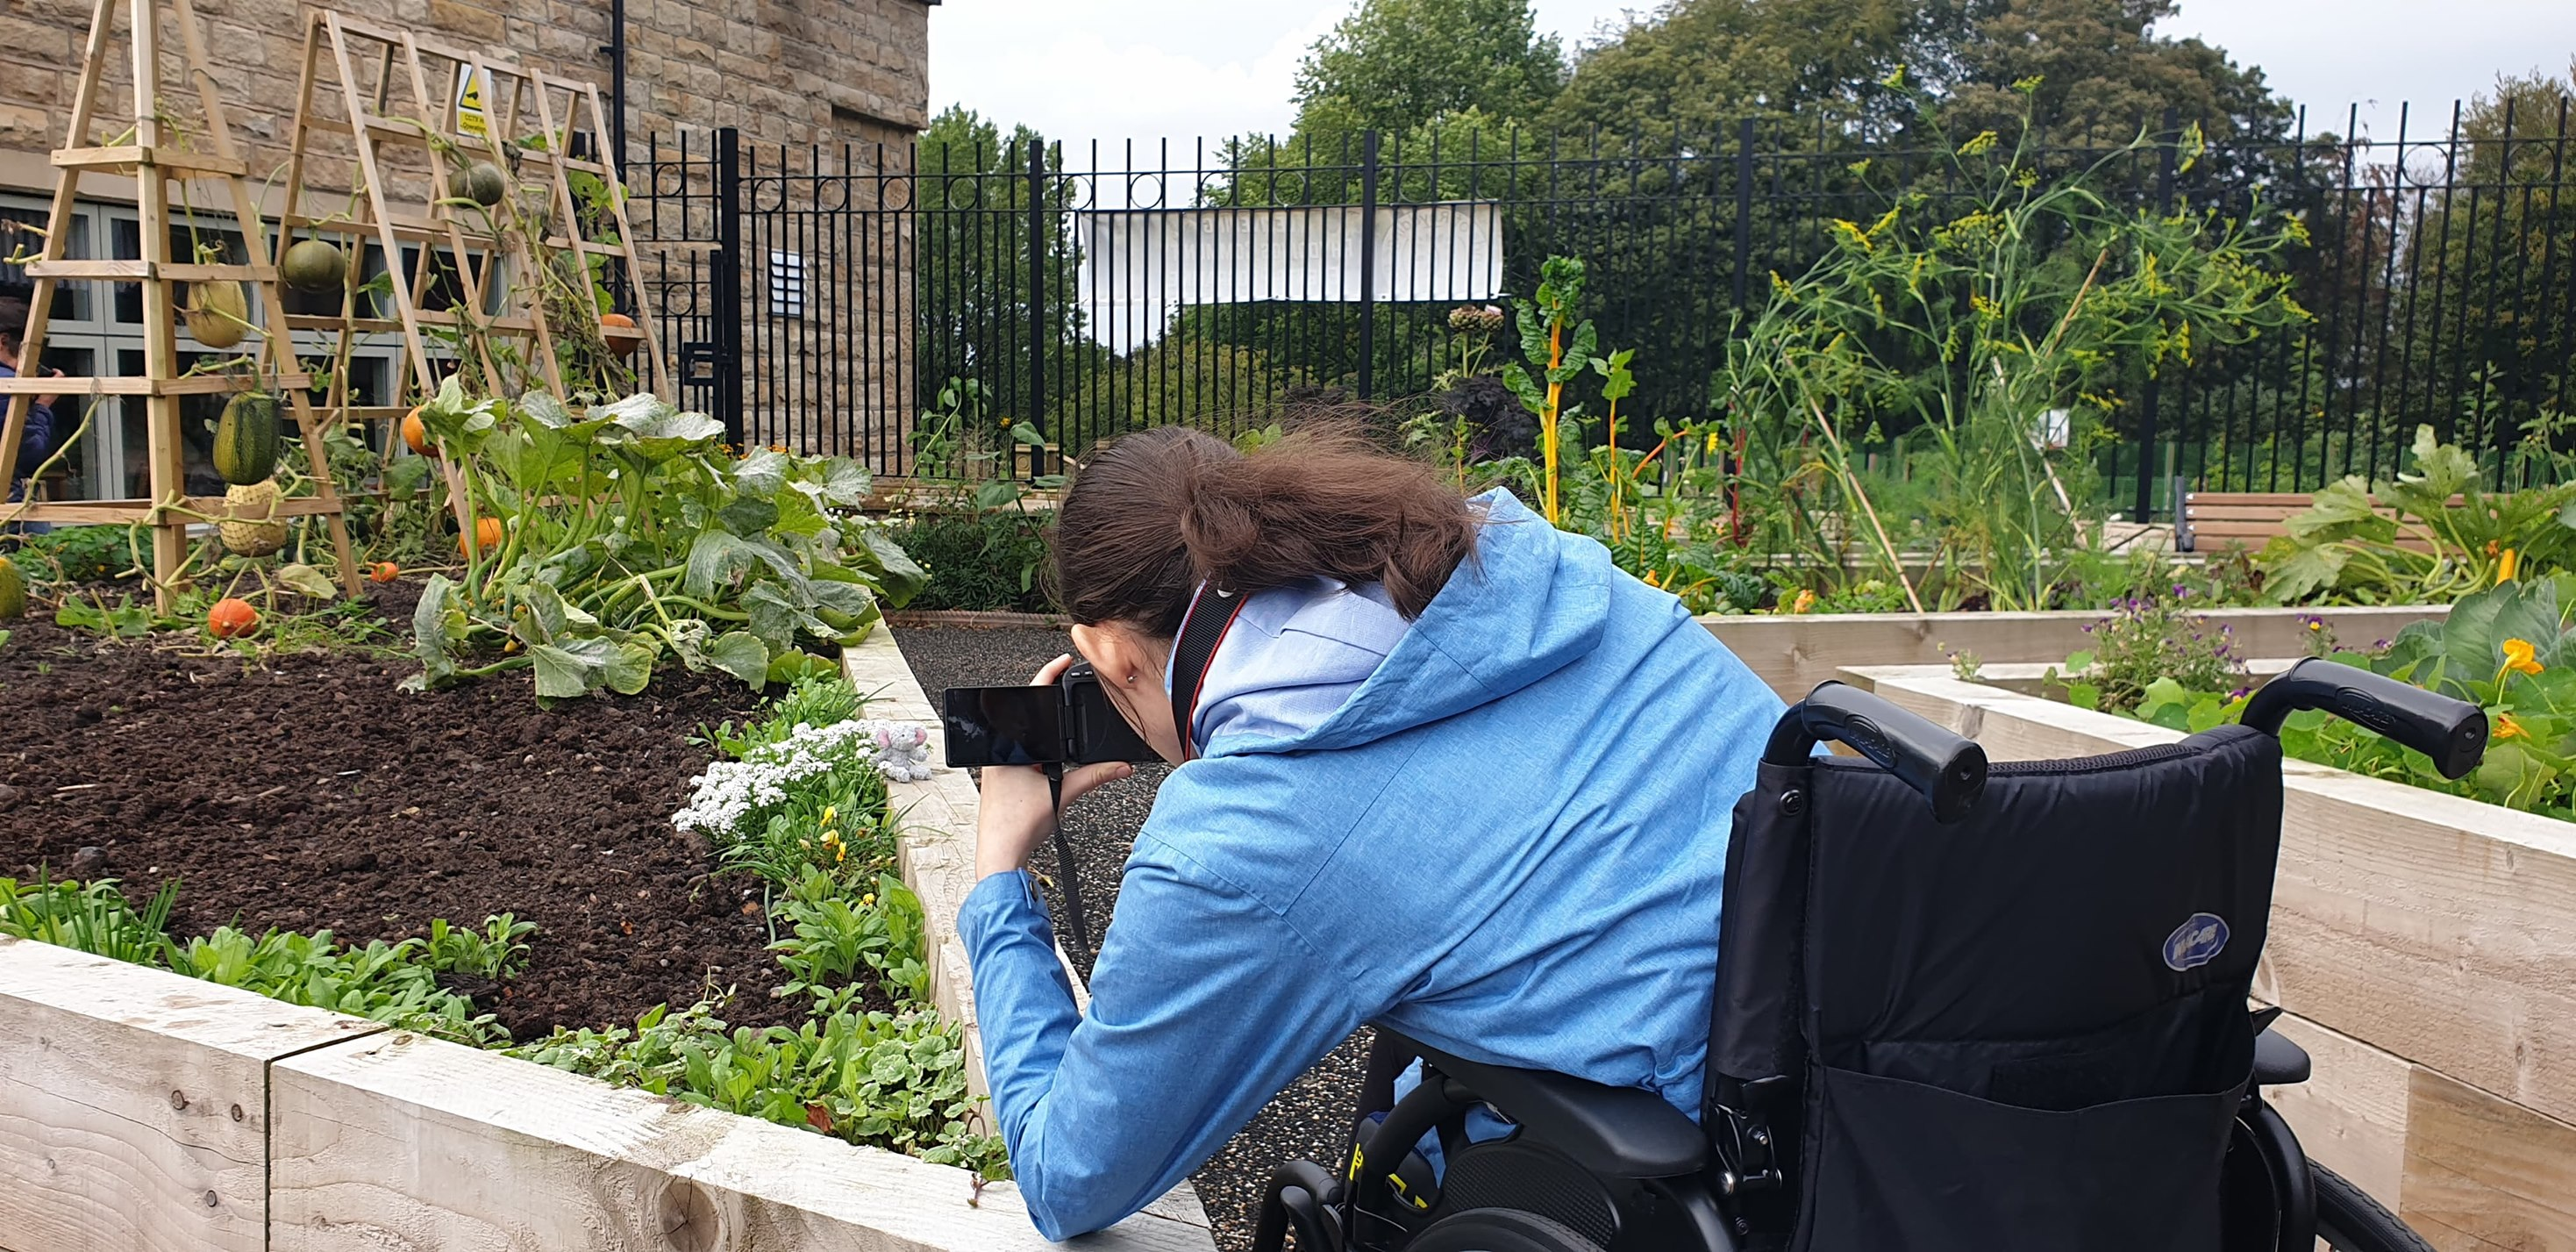 Wheelchair user takes photo in garden